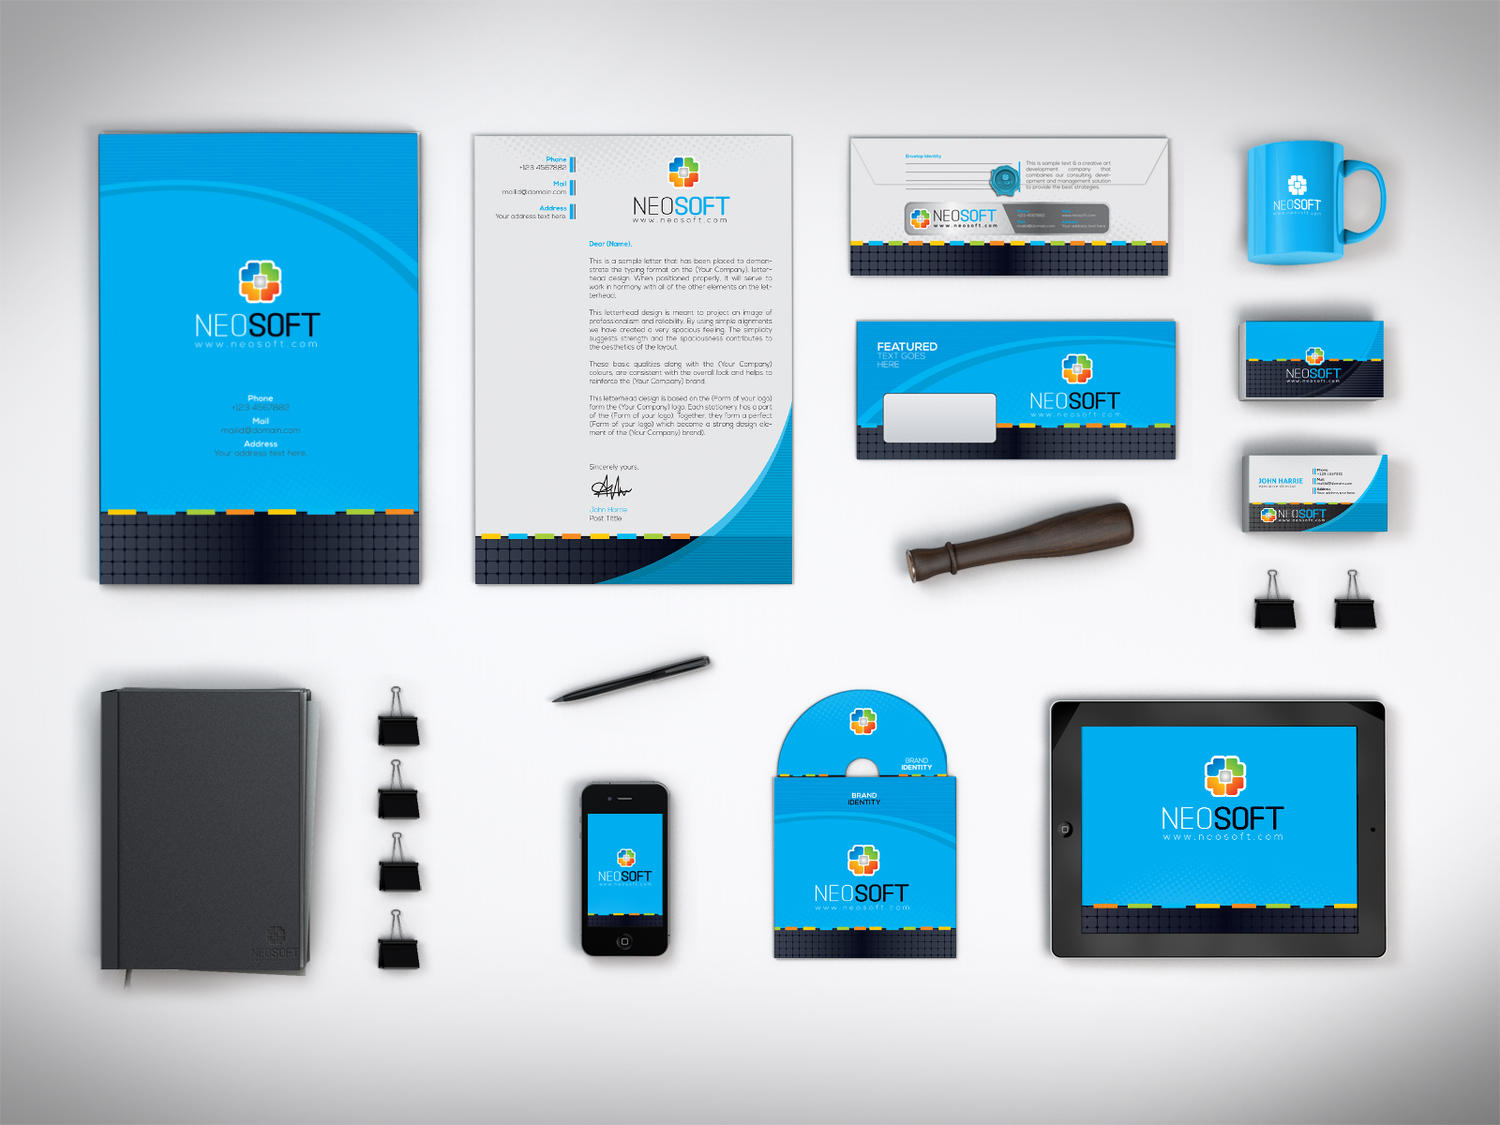 Corporate Identity Package Design by ContestDesign - 13524